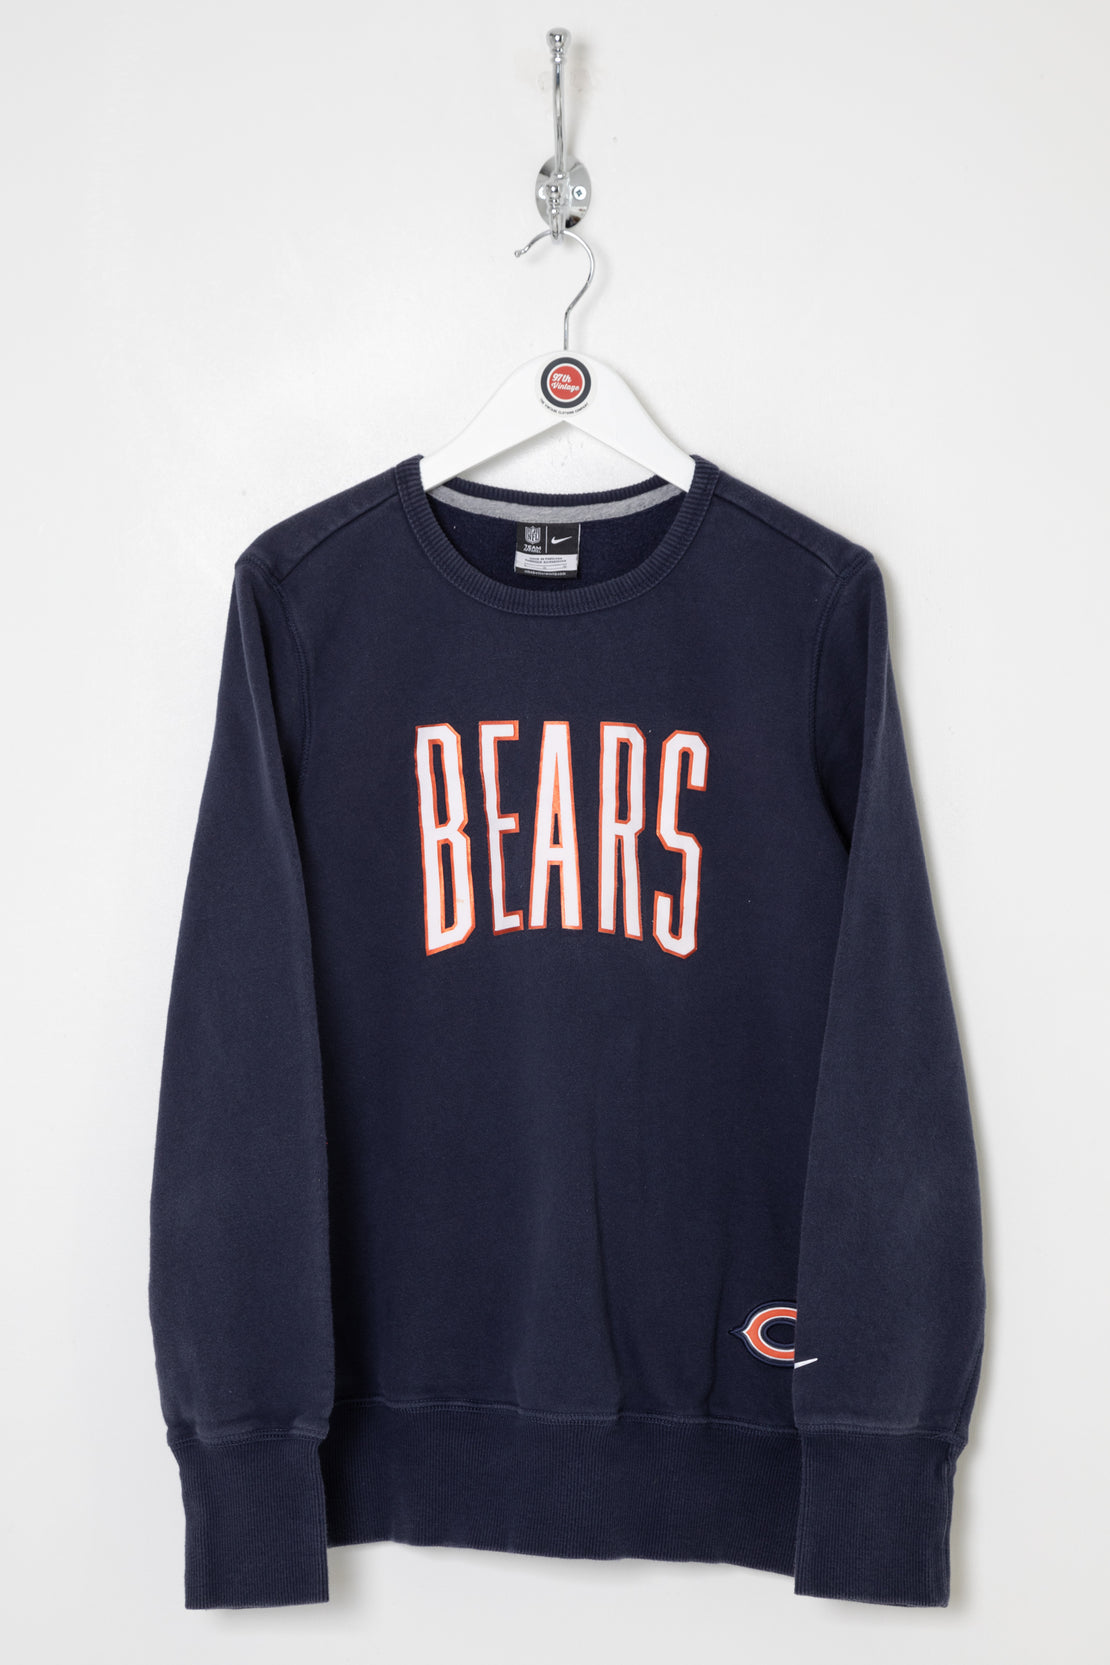 Nike Chicago Bears Sweatshirt (S)